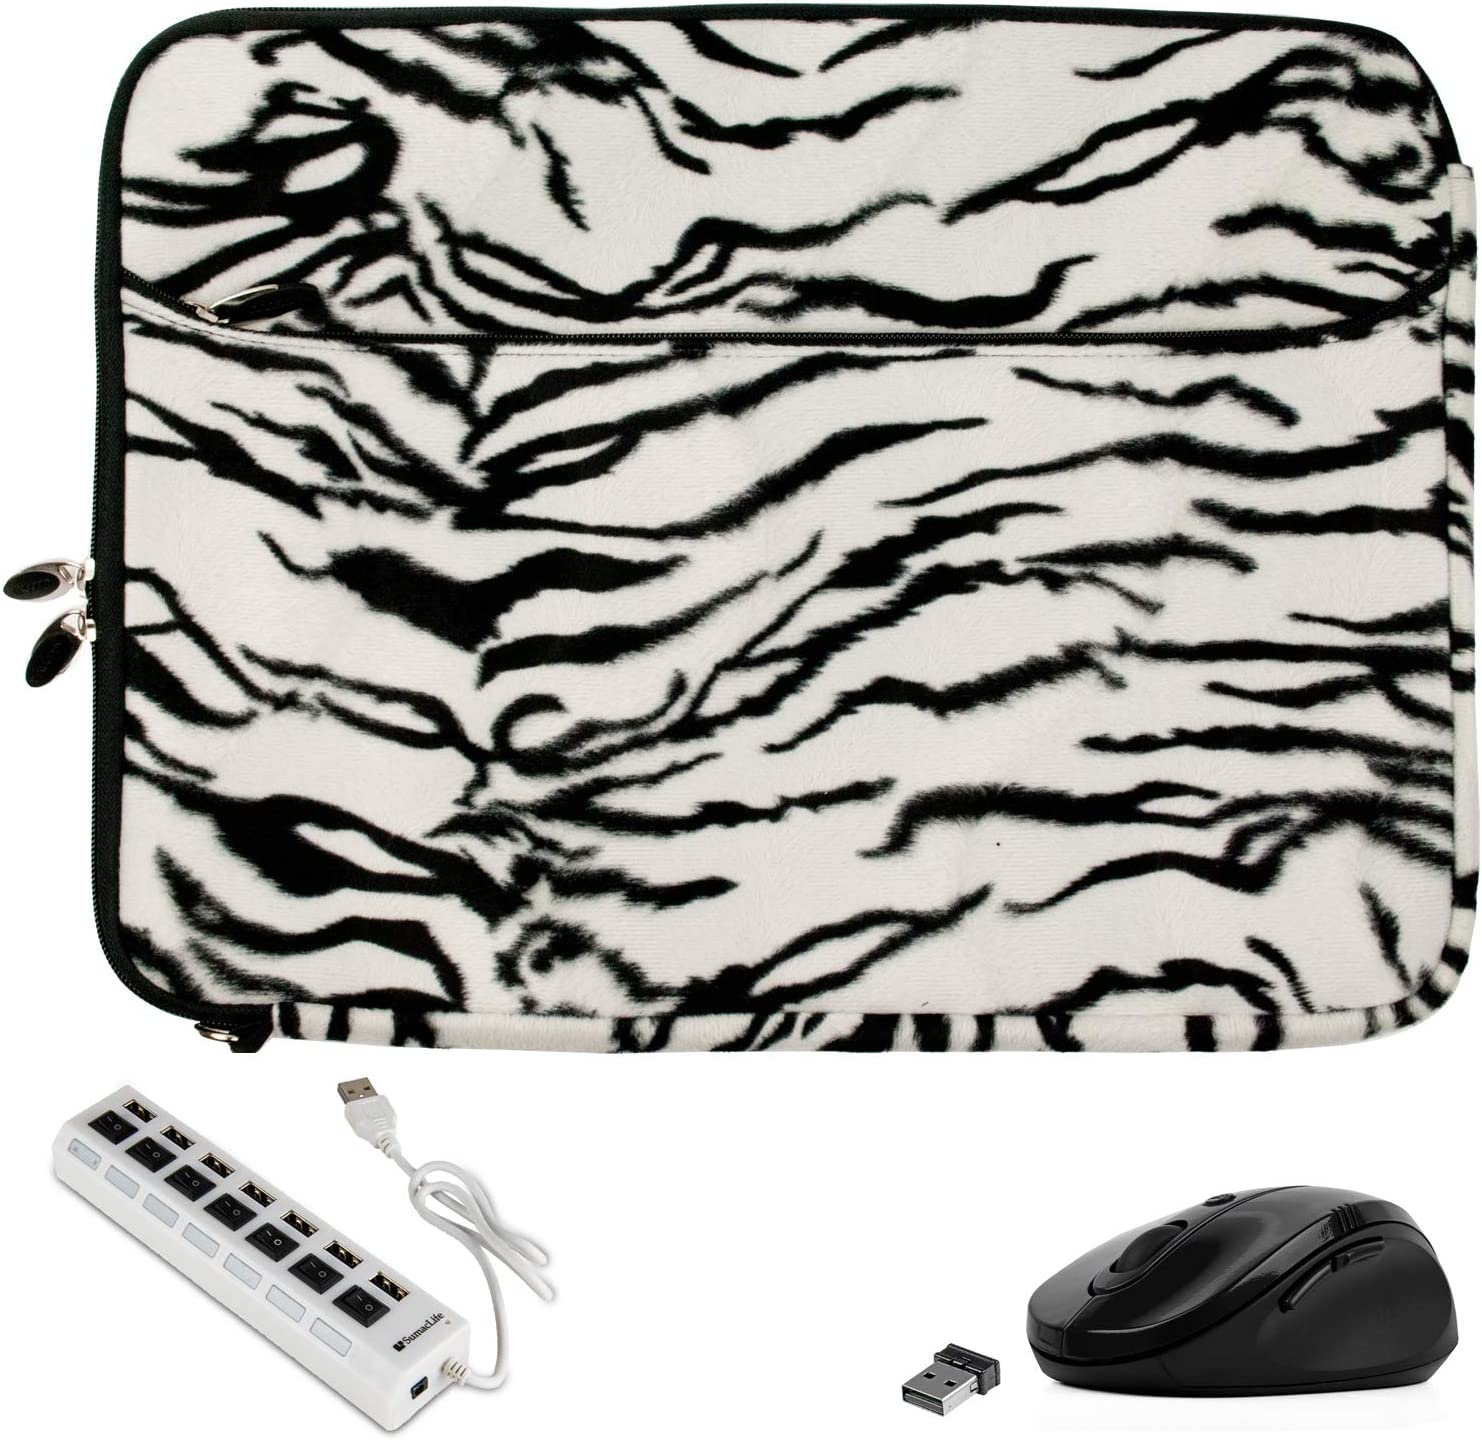 Fashion Faux Fur Zebra Laptop Sleeve 15 15.6 inch for Acer Apire R 15 3 5 7 E F, ChromeBook 15 715 CB715 C910 CB315 CP315, Nitro 7 5 Spin, Spin 3 5, Swift 3 (Includes Mouse and USB Hub)